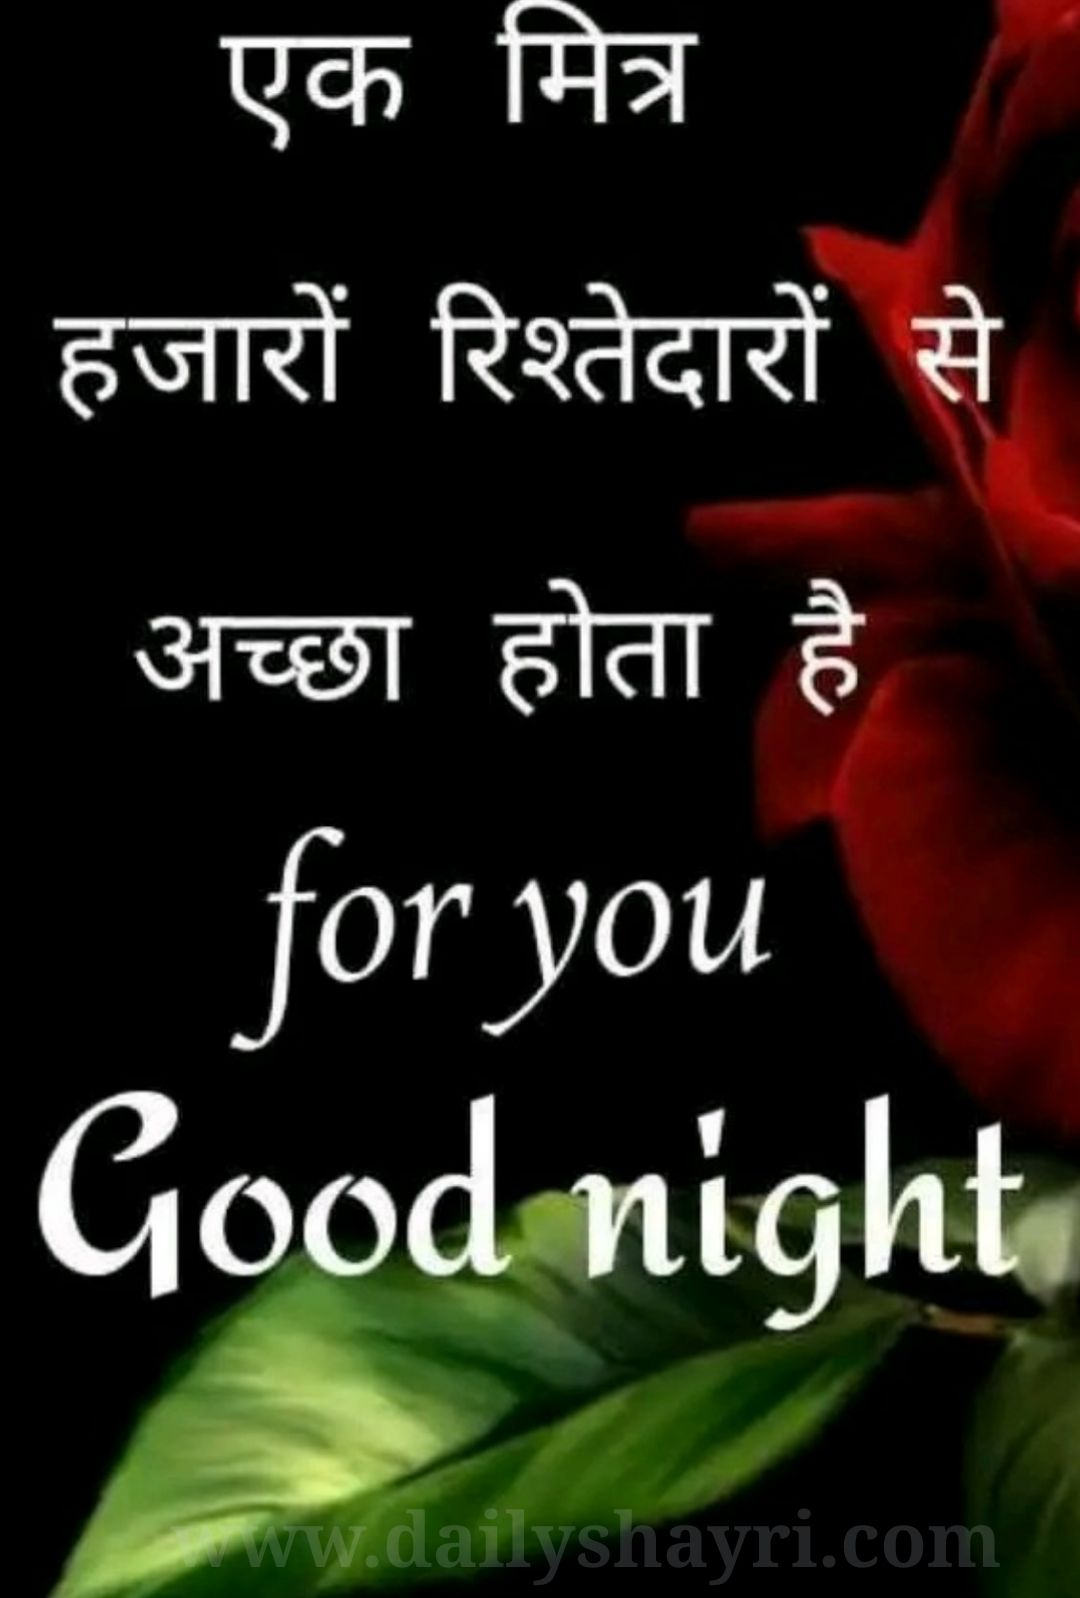 Latest Good Night Shayari Images For Girlfriend Hindi Shayari Love Shayari Love Quotes Hd Imag Good Night Quotes Good Night Thoughts Good Night Love Messages